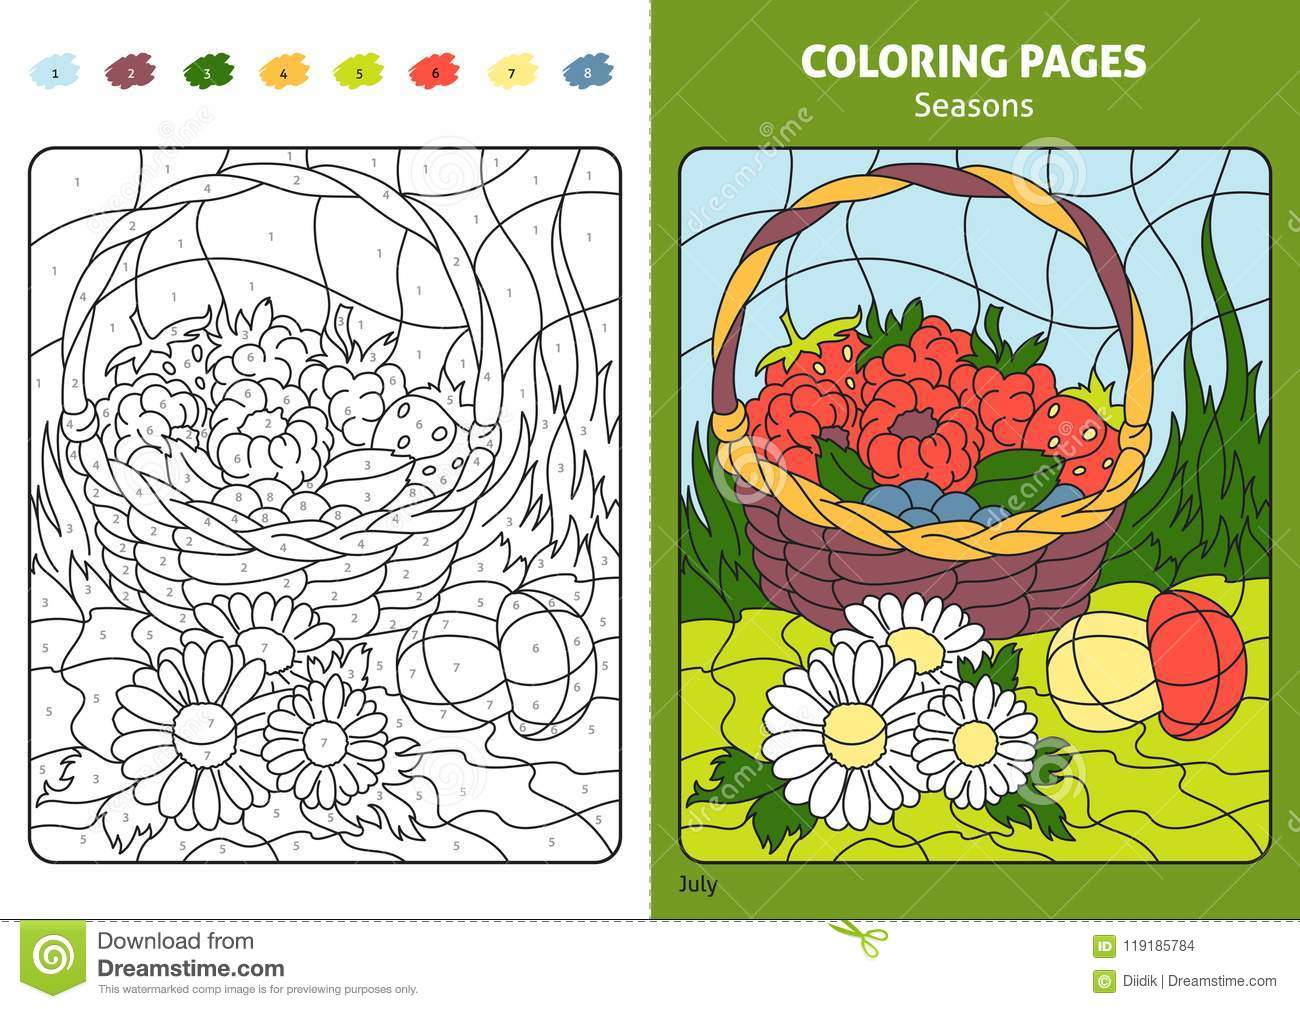 Seasons Coloring Page For Kids, July Month. Stock Vector ...